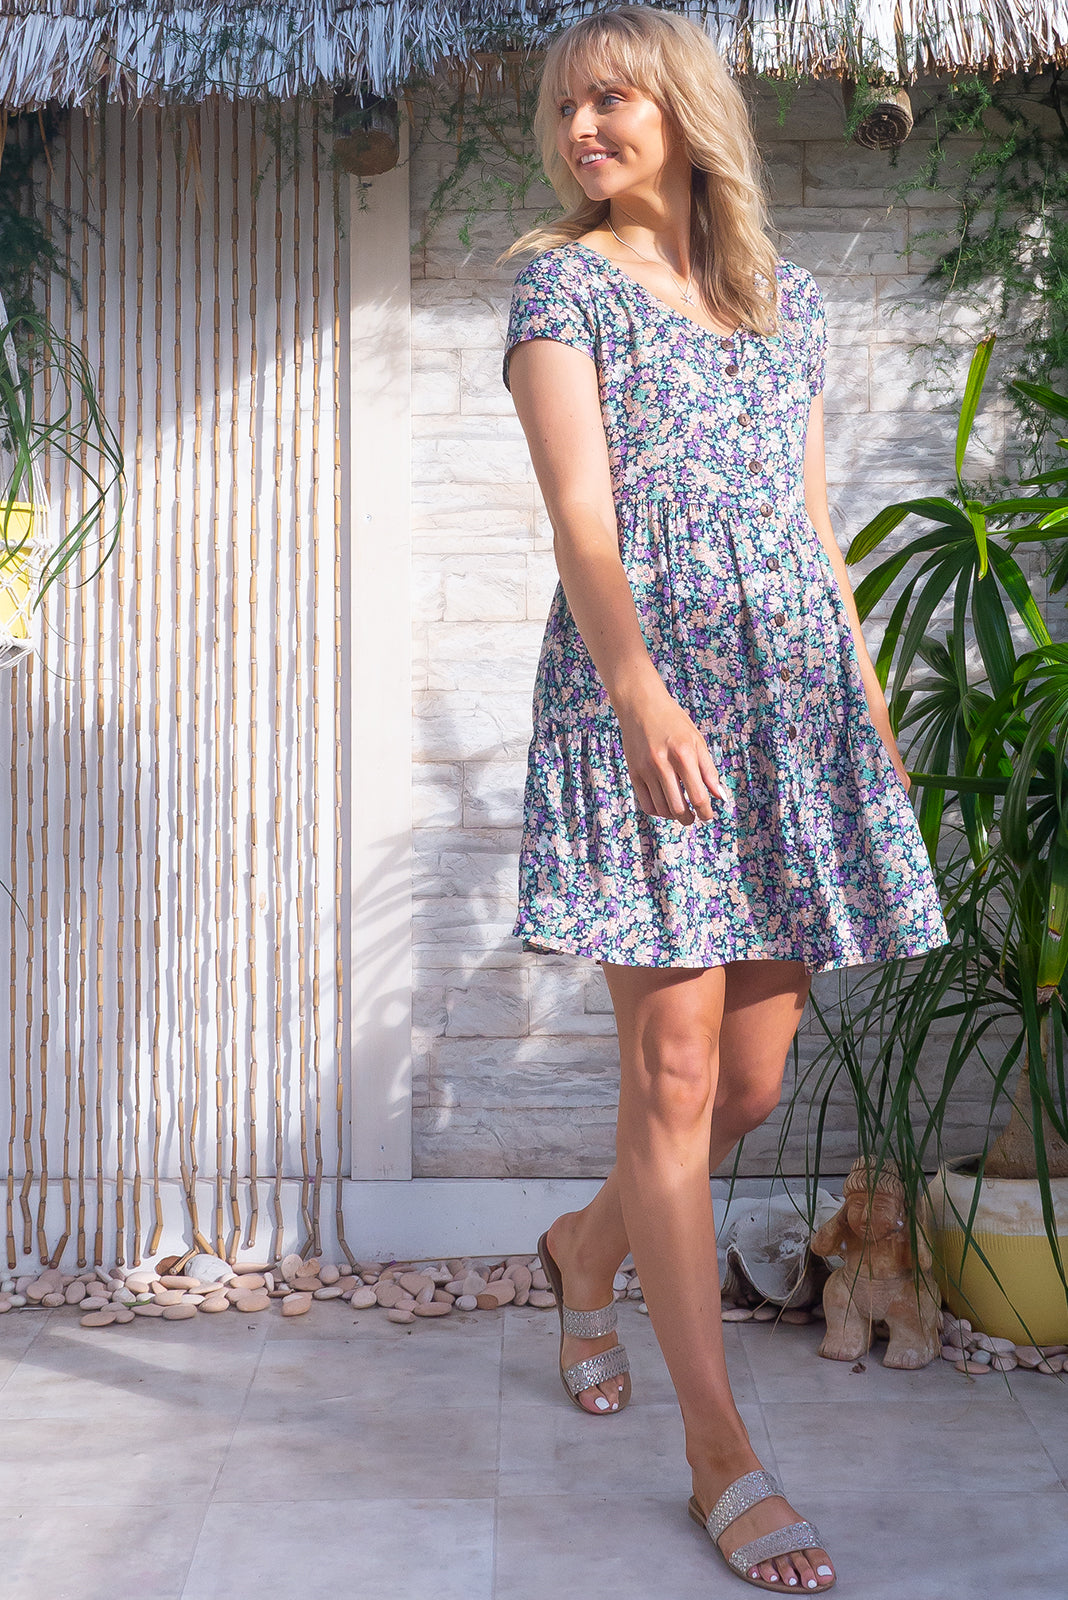 The Georgie Country Mauve Dress features functional button front, cap sleeves, adjustable side tabs, side pockets, frilled hem and 100% rayon in navy base with pink, purple and white floral print.